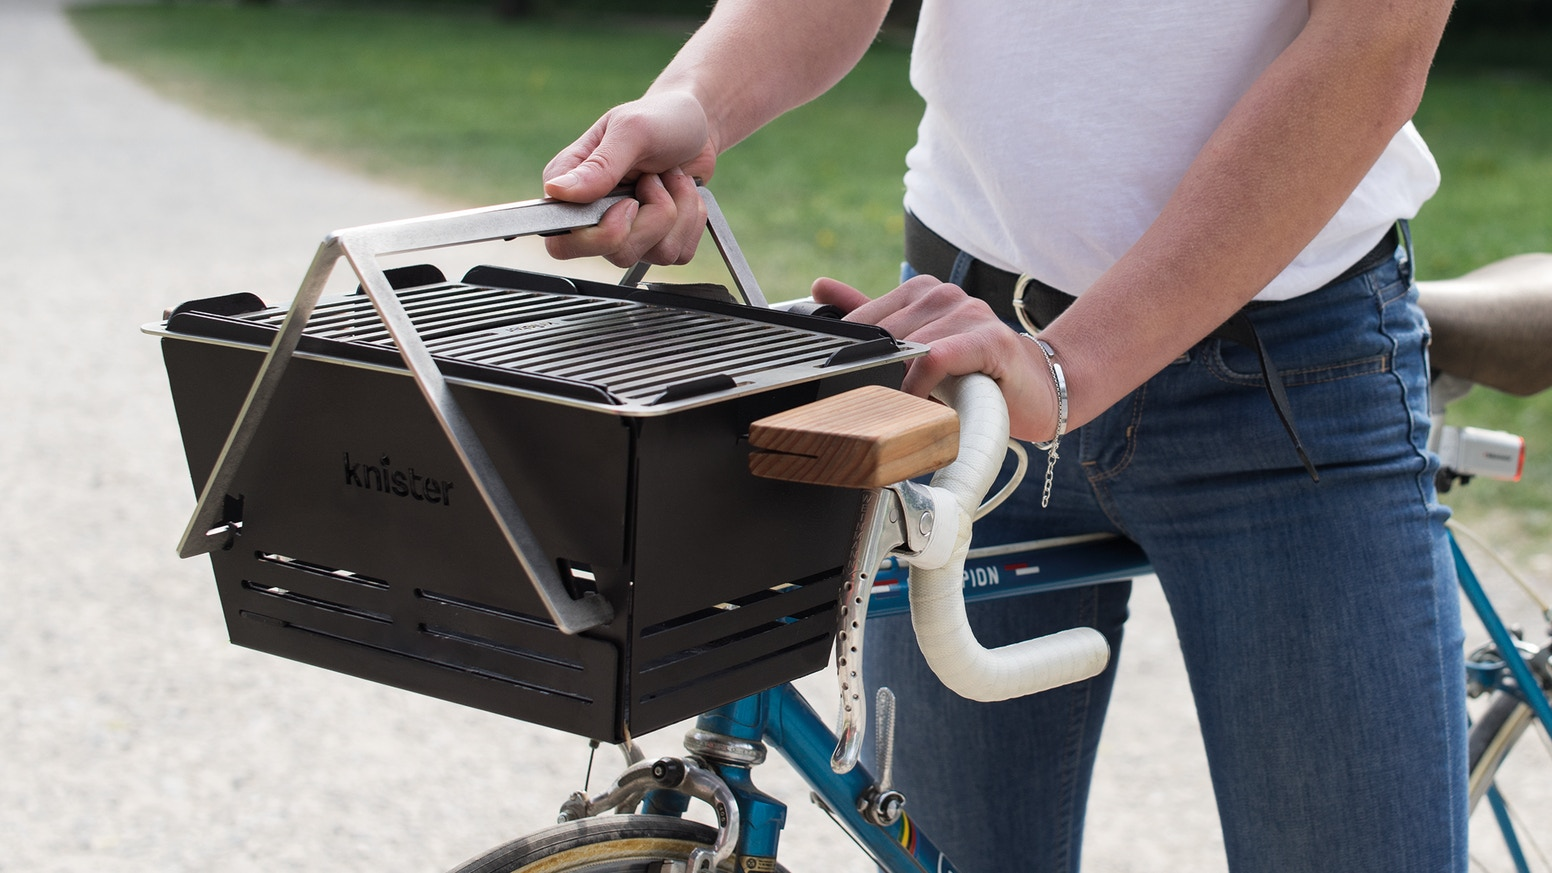 KNISTER is the first extendable charcoal grill you can transport by bike. Simply hook it to the handlebars and let's go!